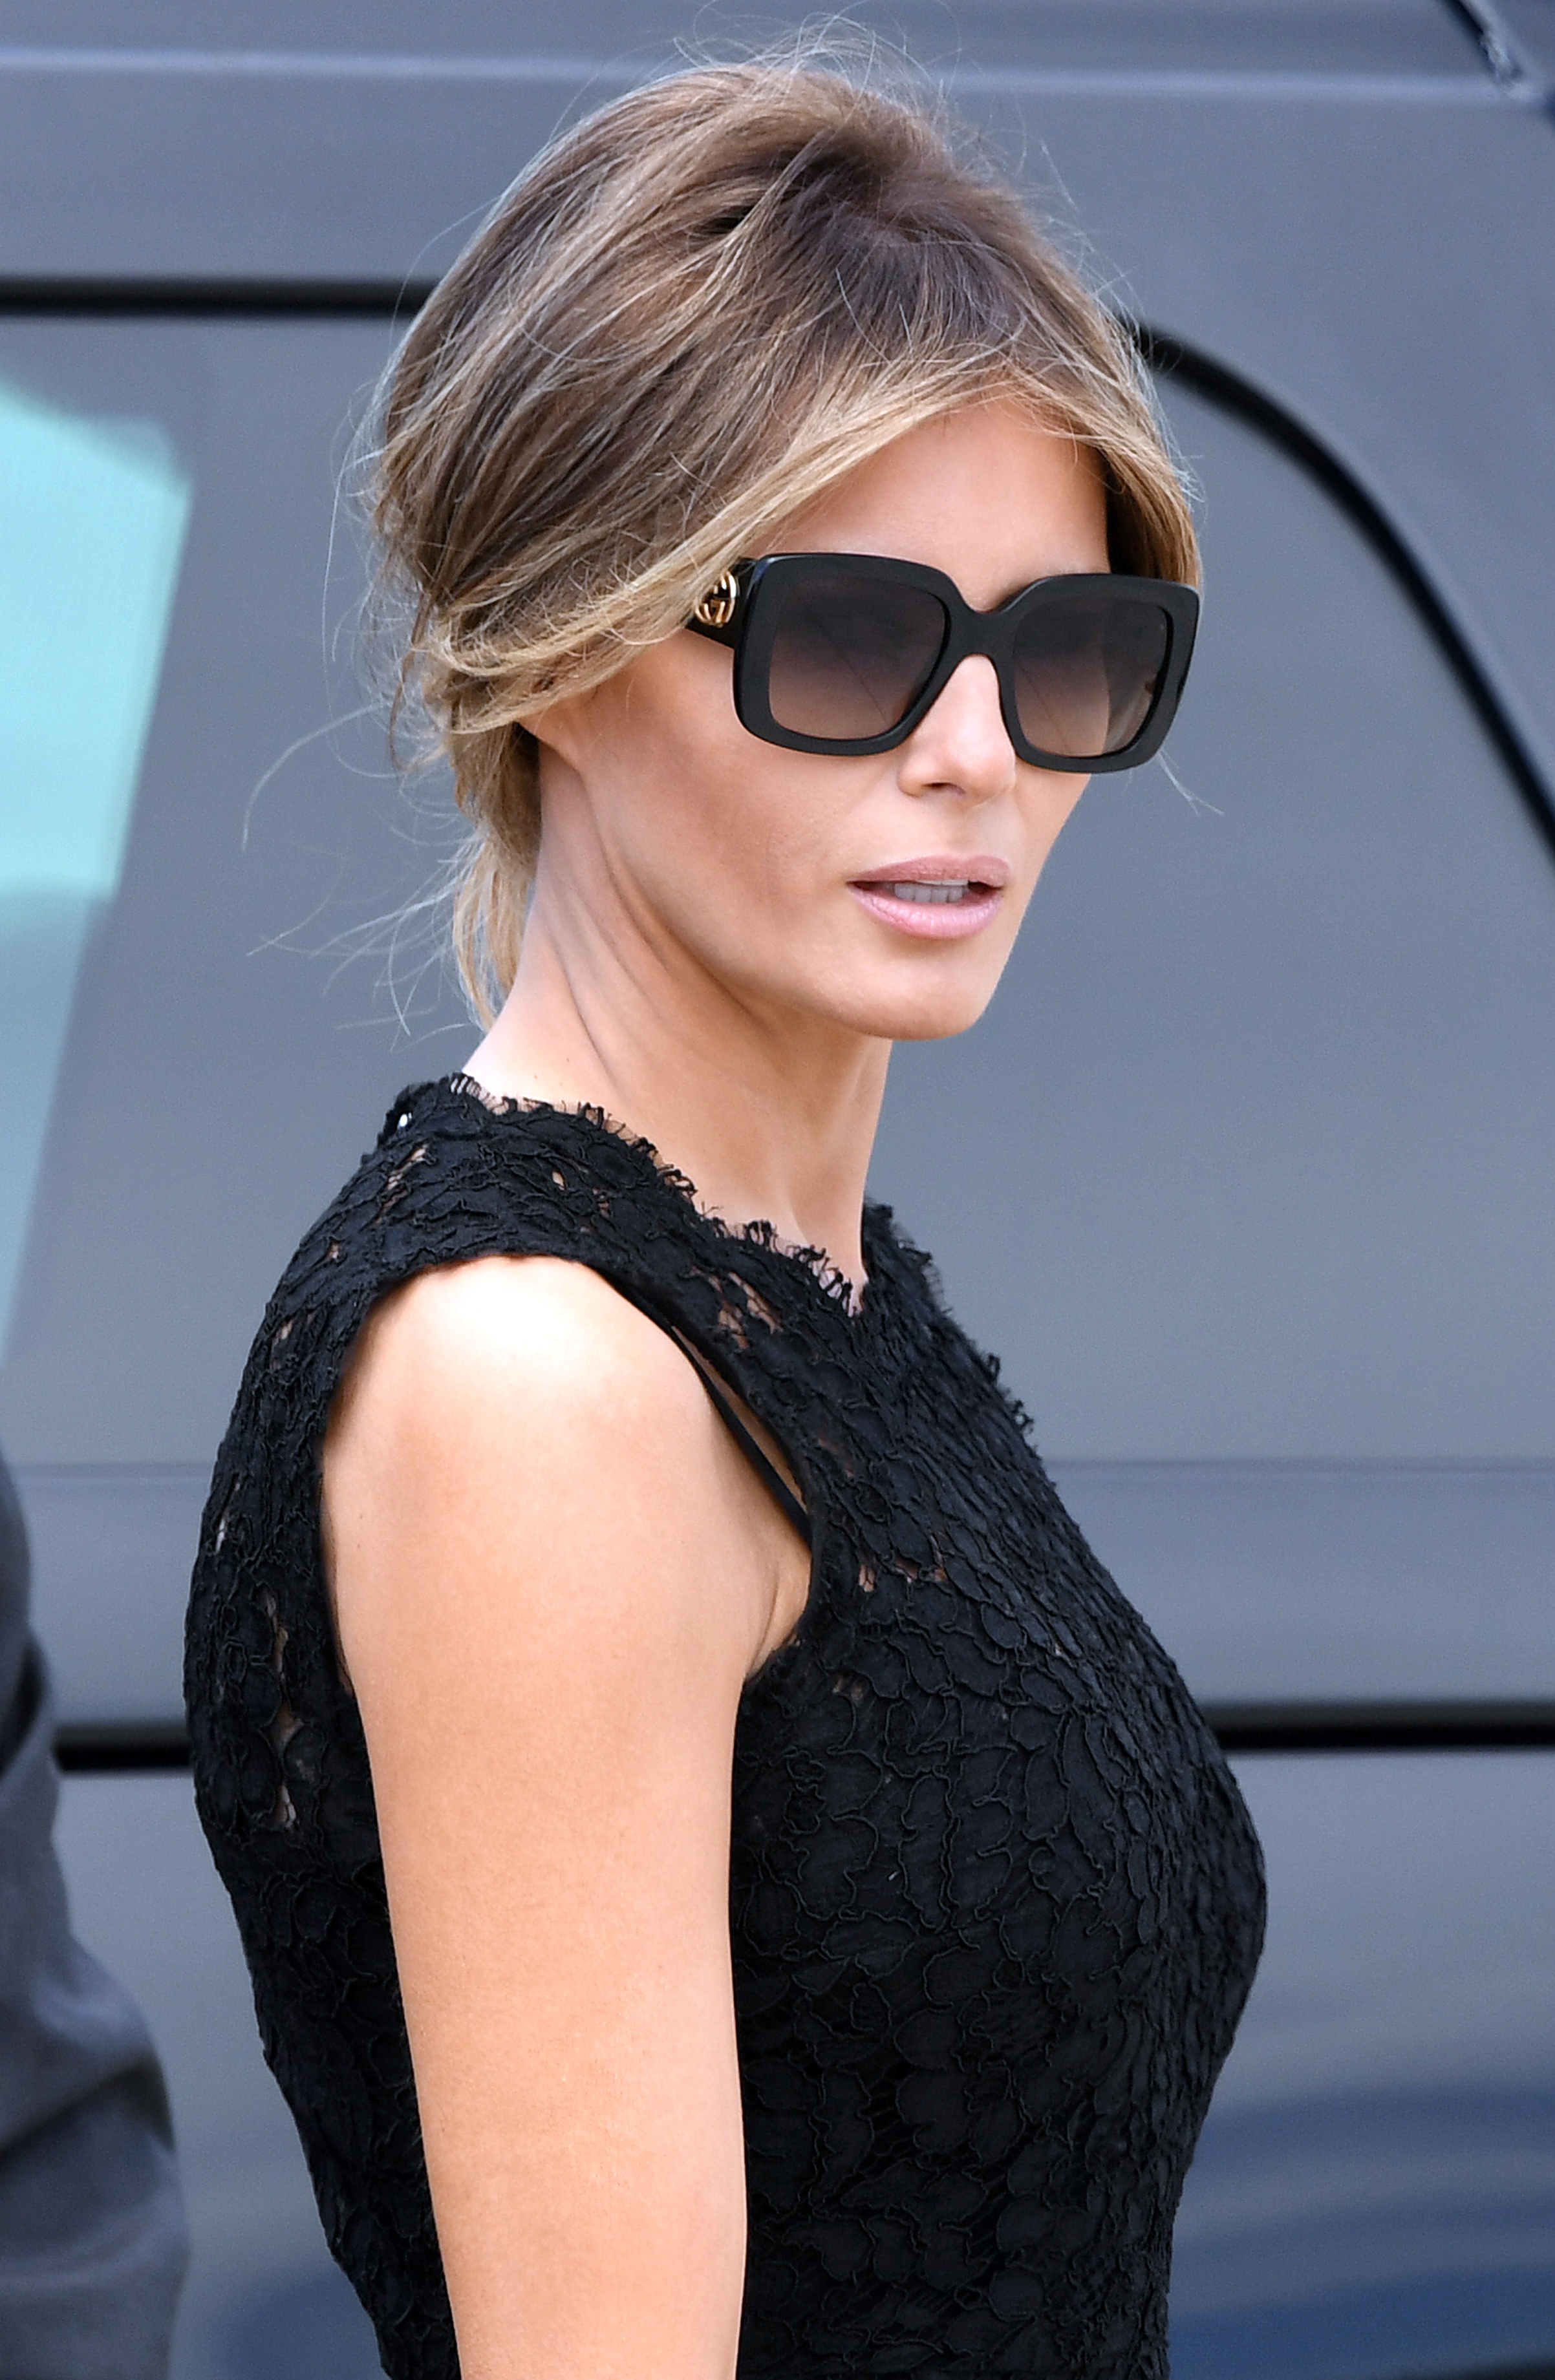 First lady Melania Trump wearing oversized square sunglasses is seen before boarding Air Force One at Leonardo da Vinci-Fiumicino Airport in Rome, Italy, May 24, 2017.